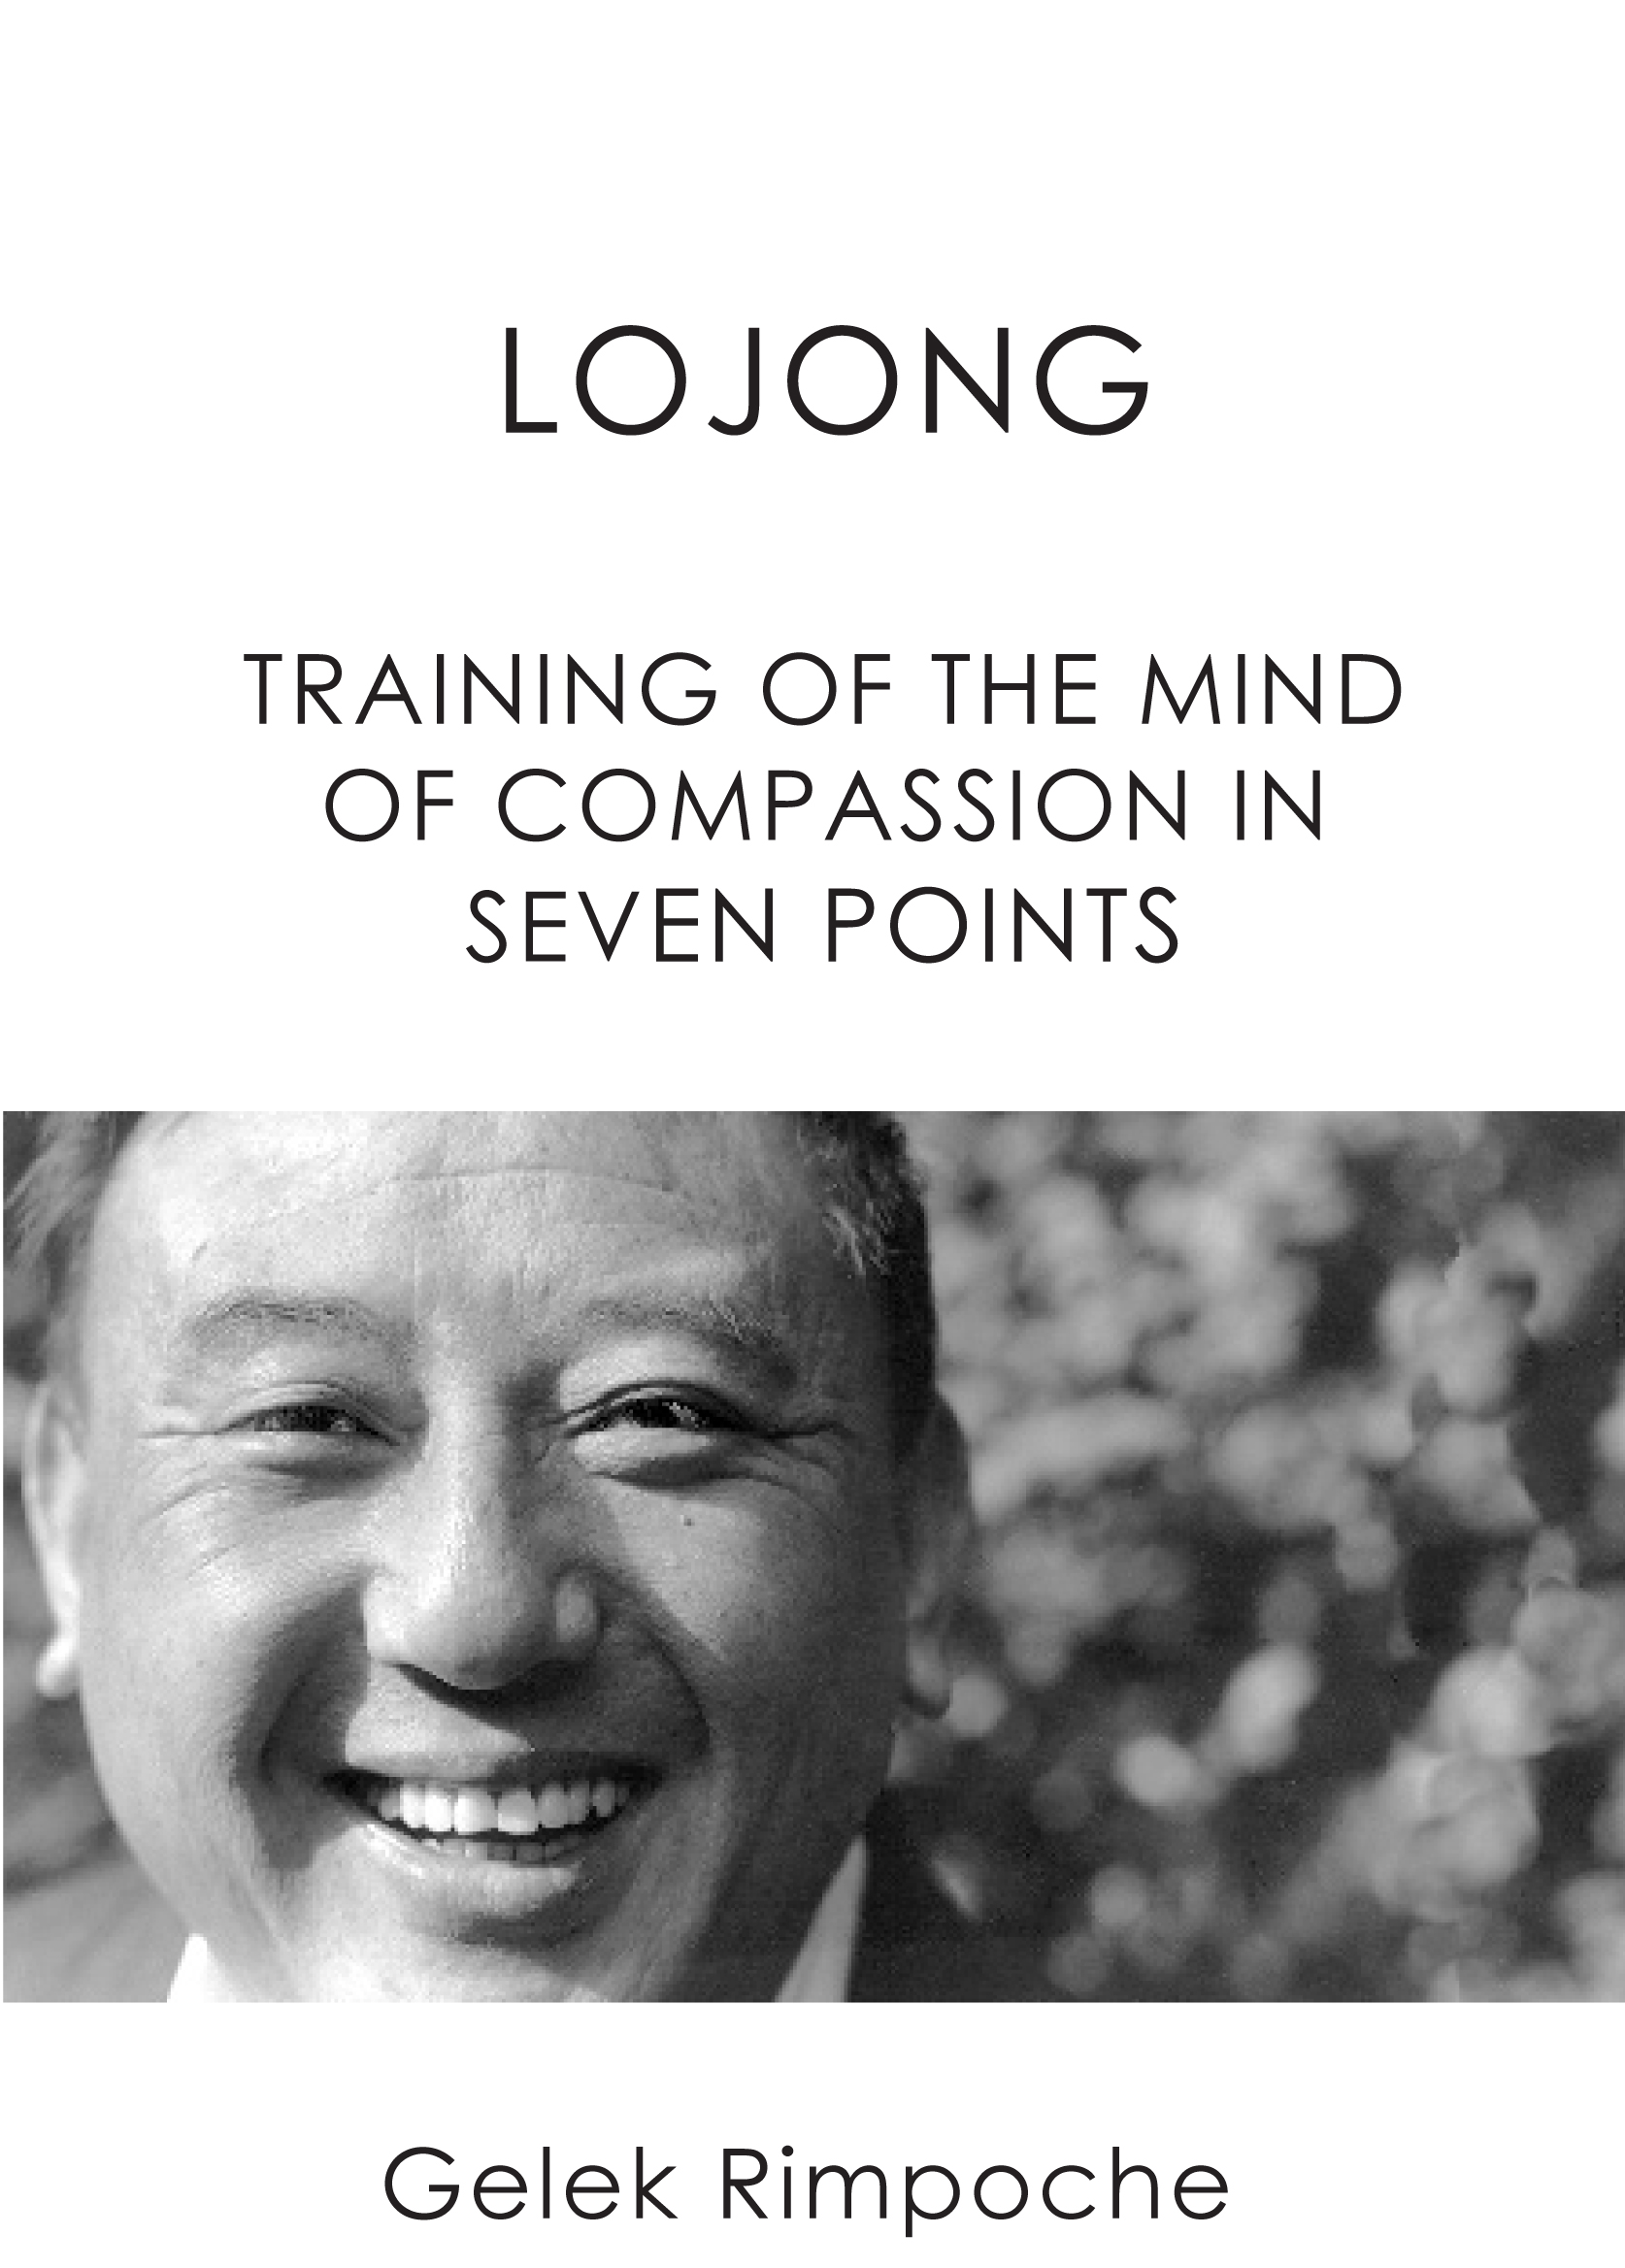 Lojong in 7 points